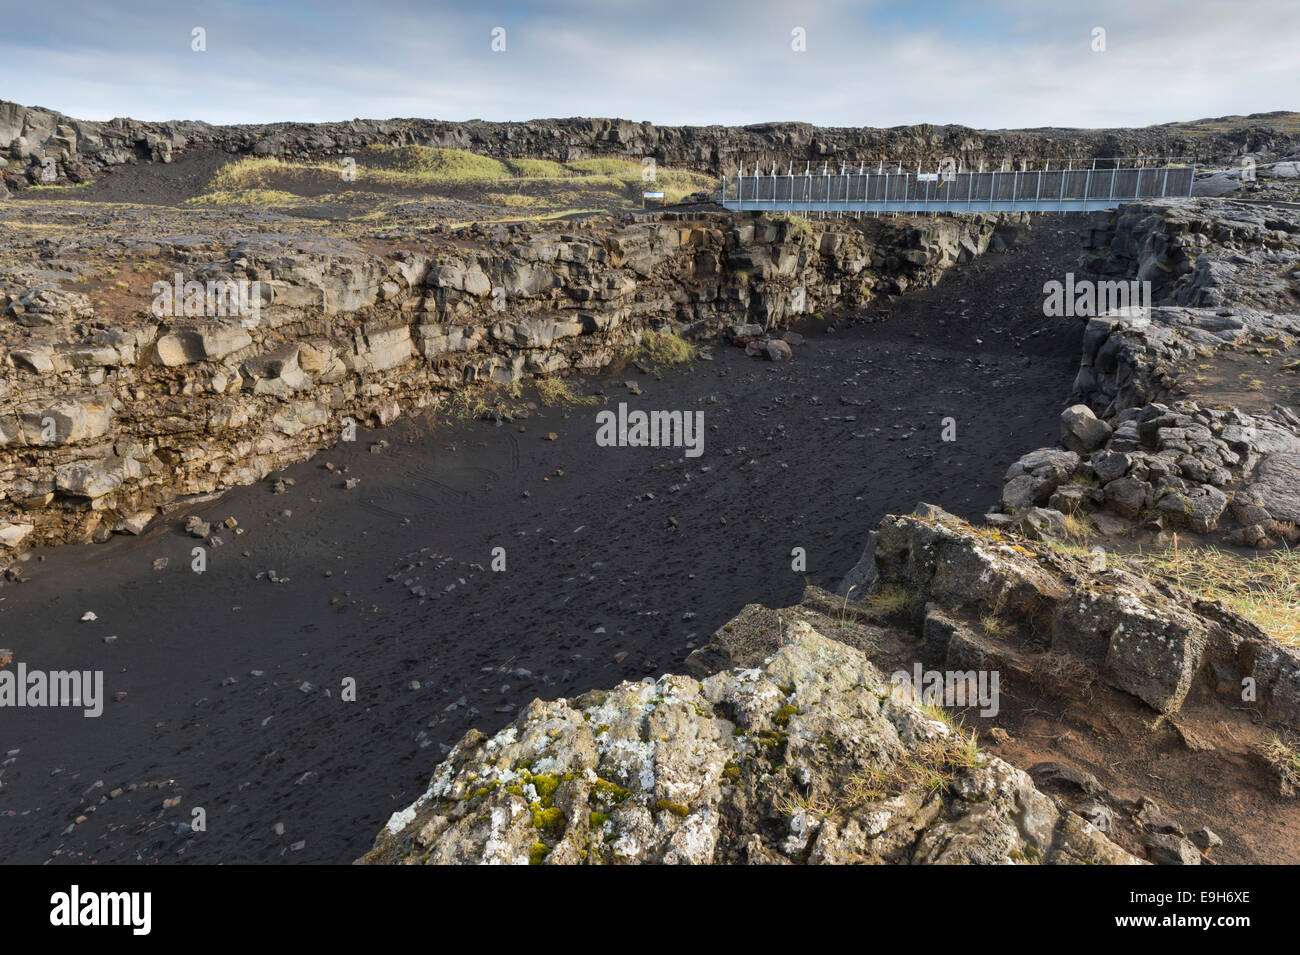 Bridge between the continents crosses the fracture zone between the American and European tectonic plates - Stock Image